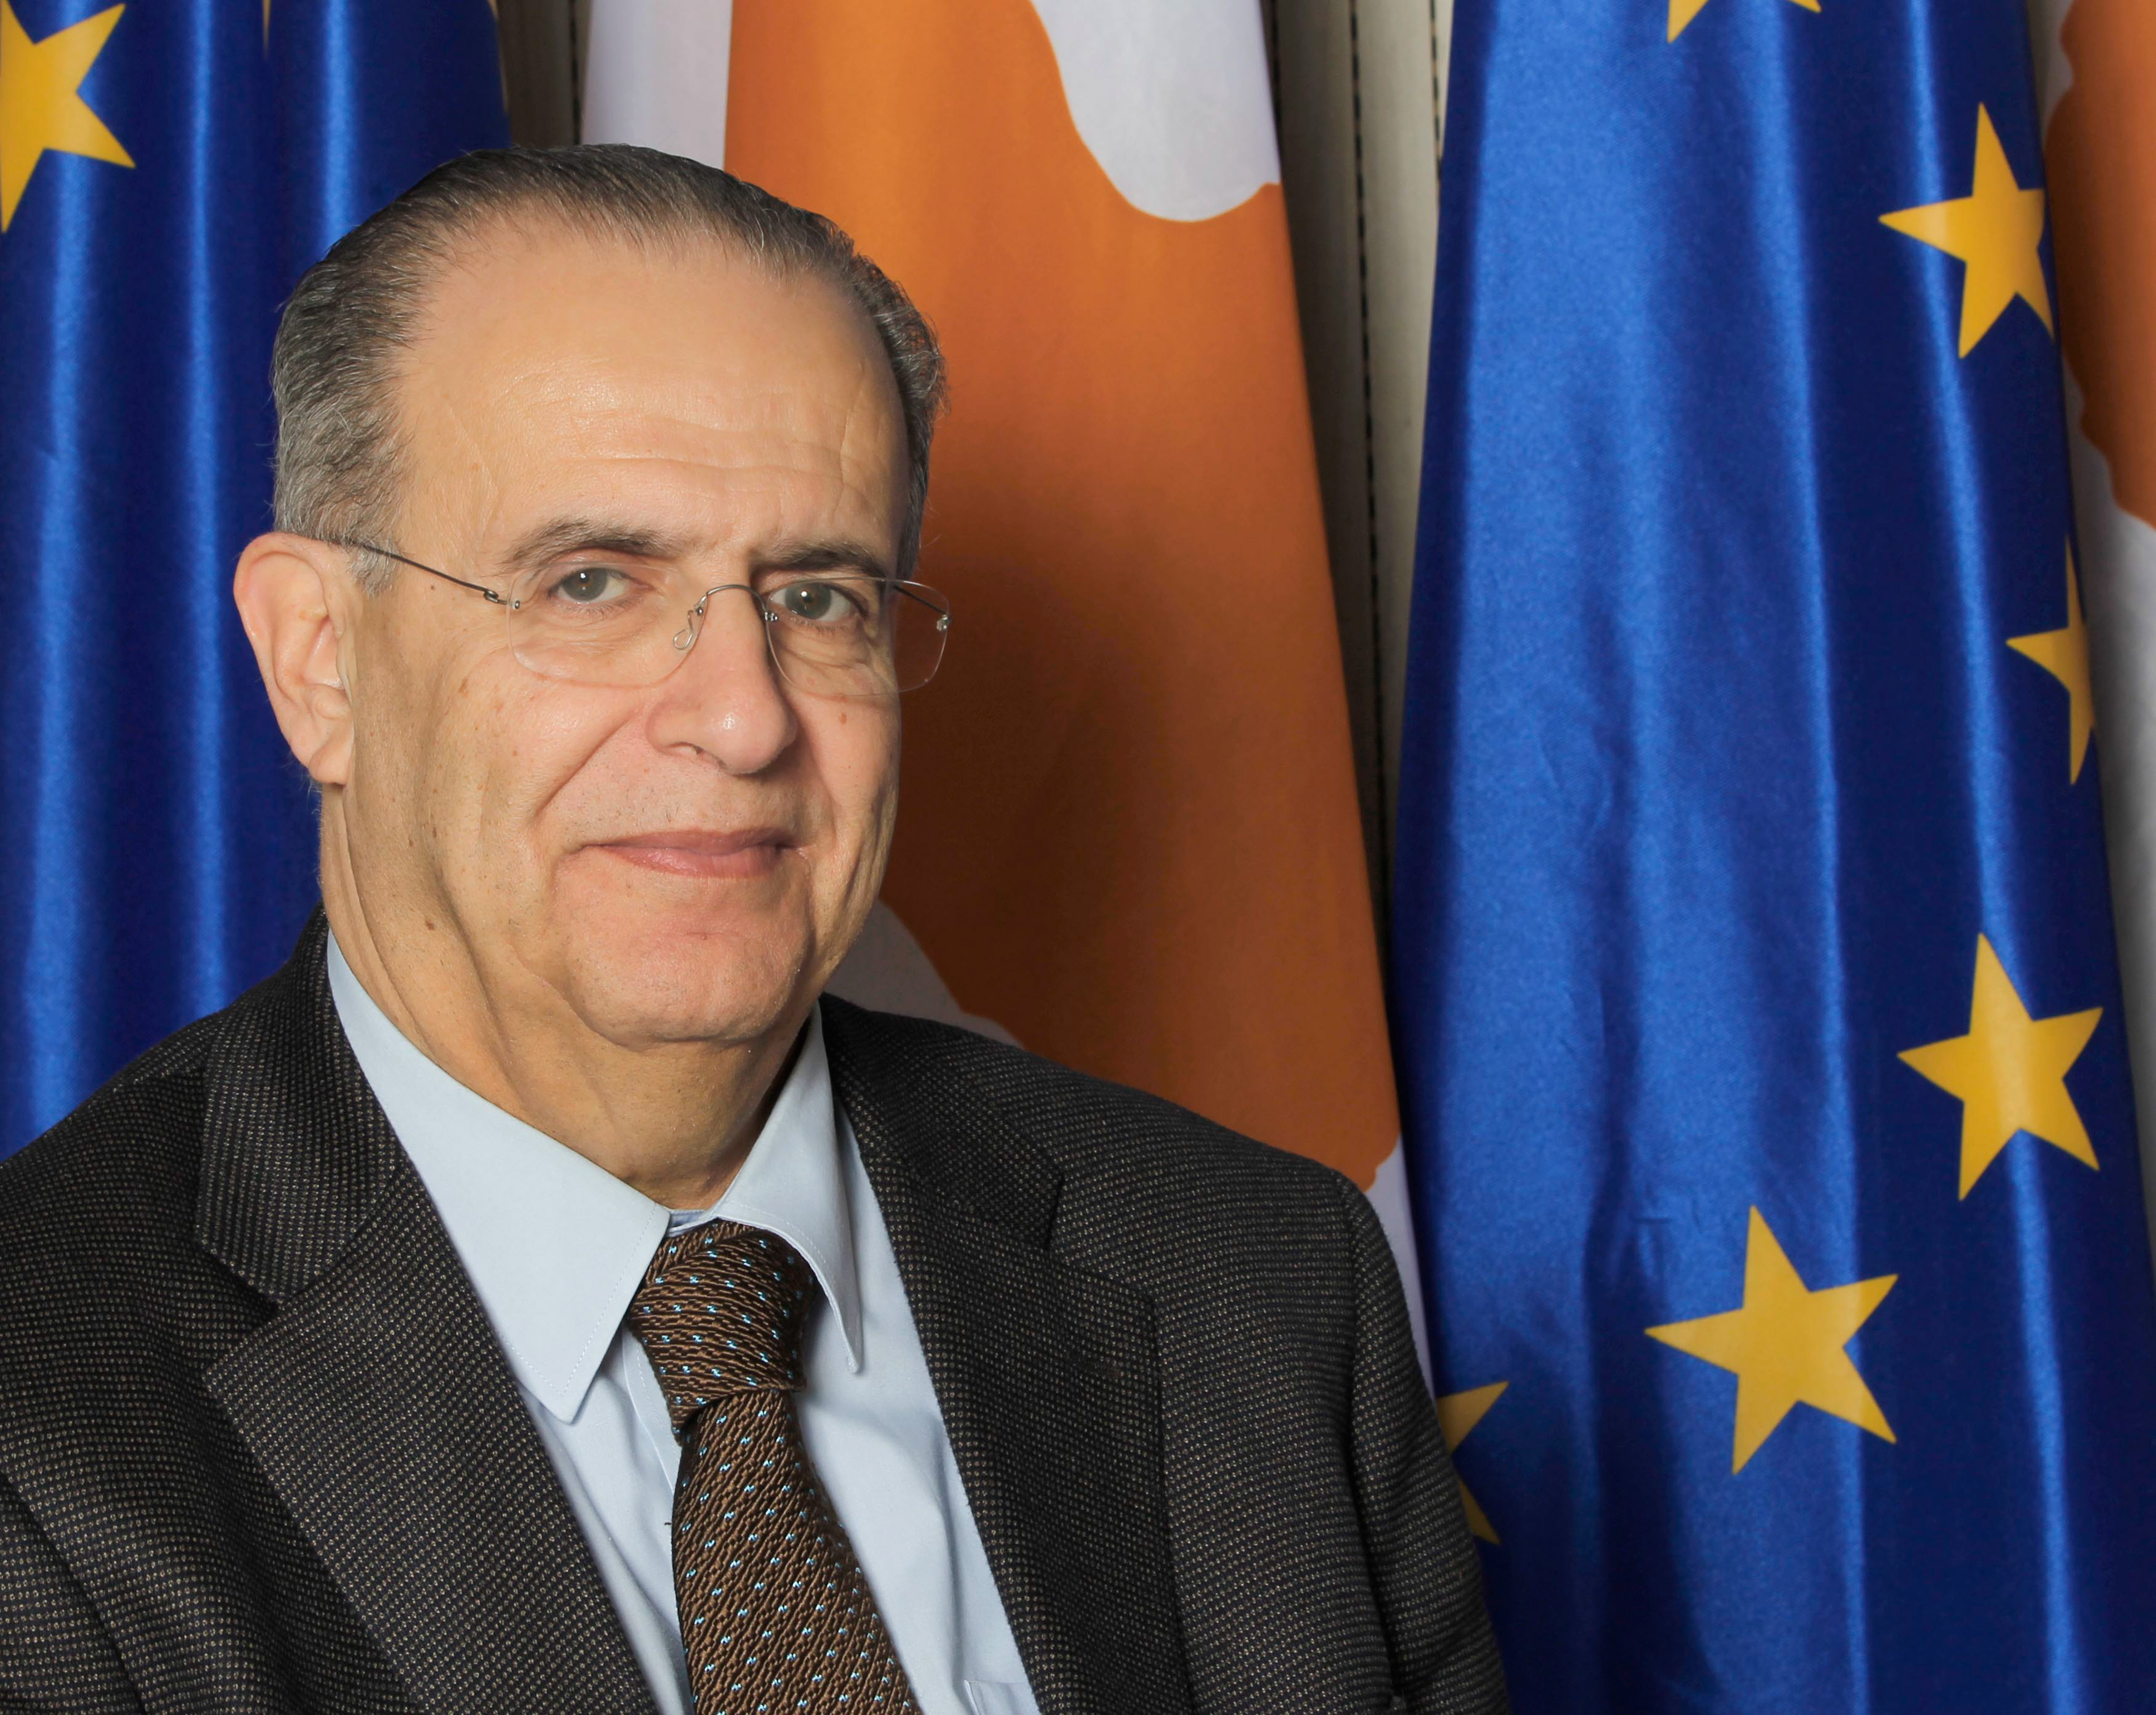 The Minister of Foreign Affairs will travel to Paris